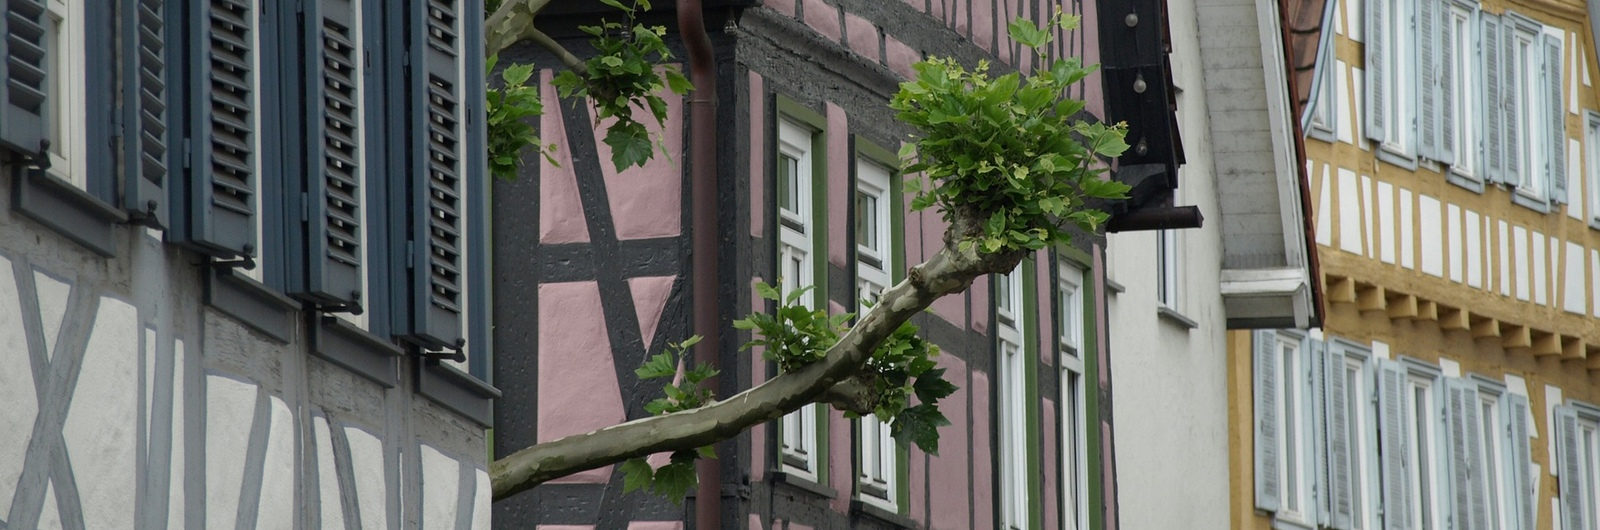 Waiblingen city header